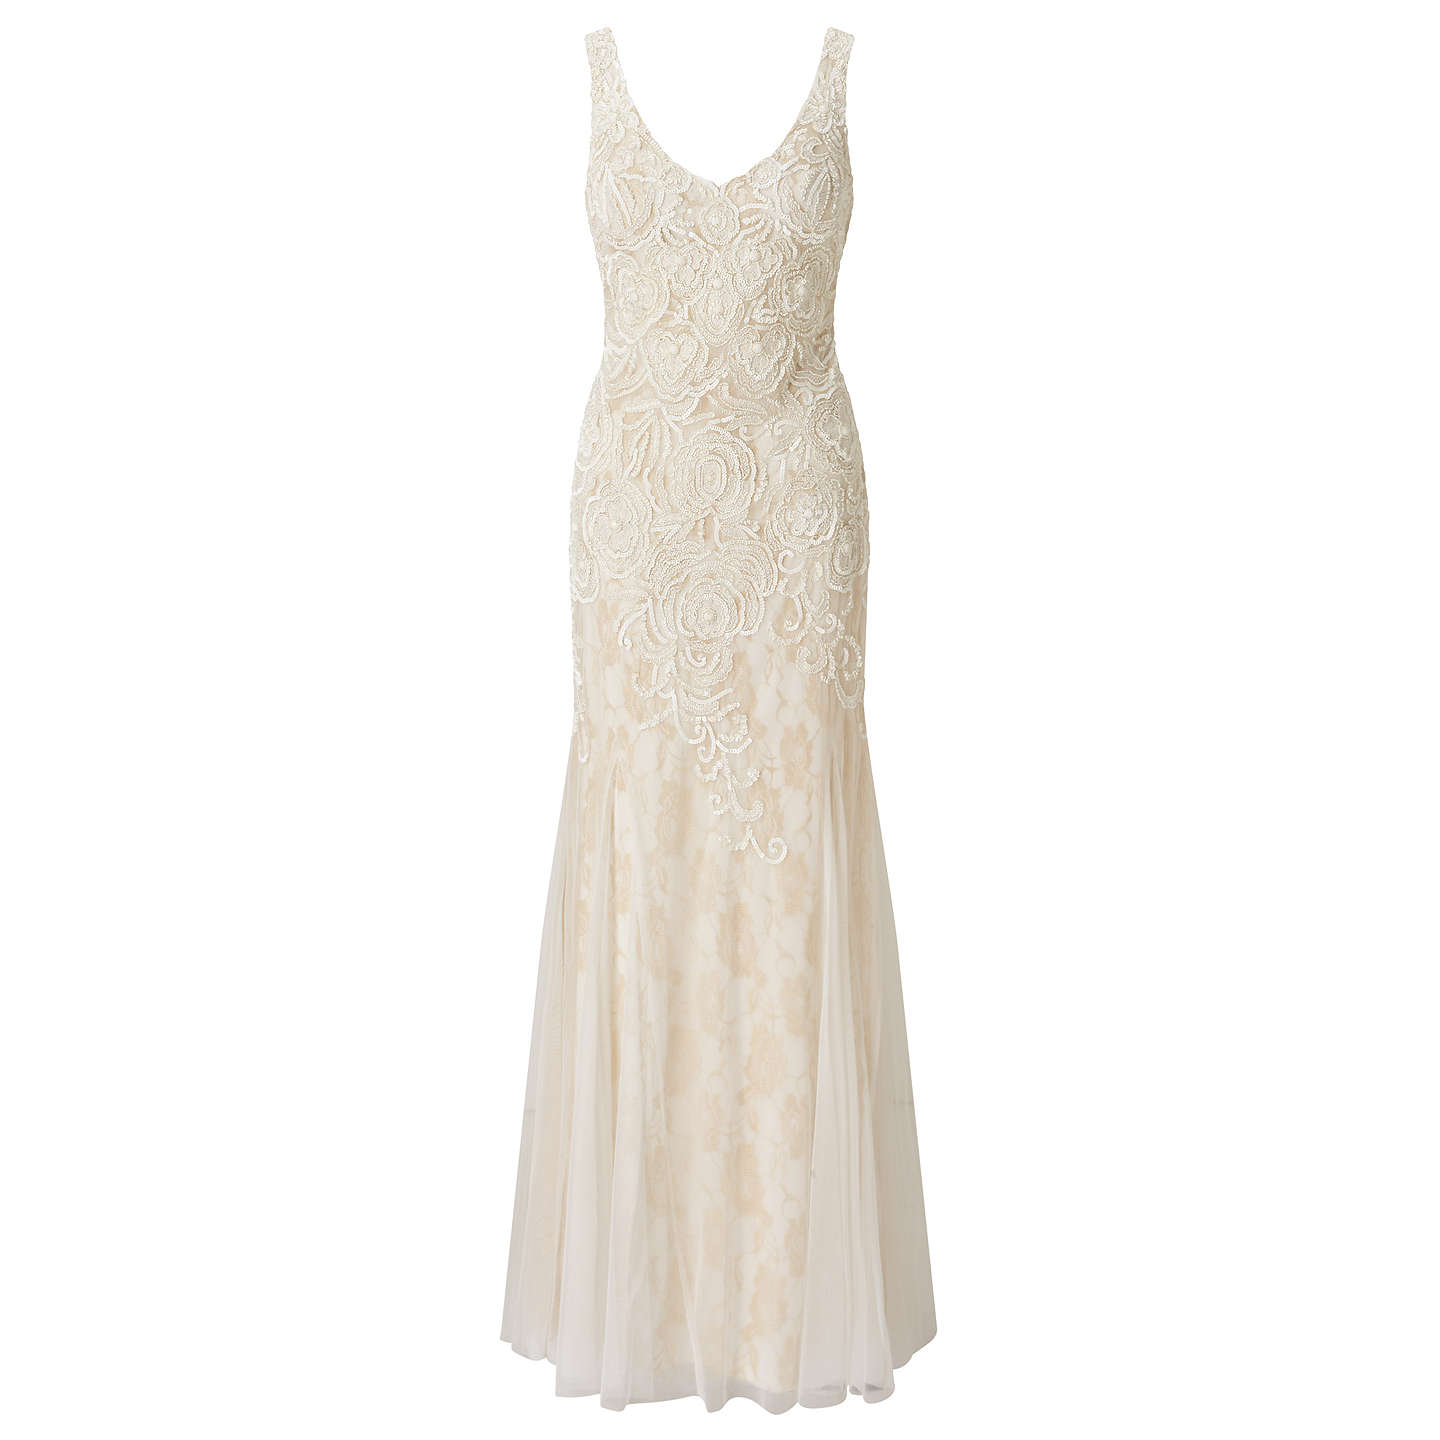 Adrianna Papell Sleeveless Beaded Mermaid Gown, Ivory at John Lewis